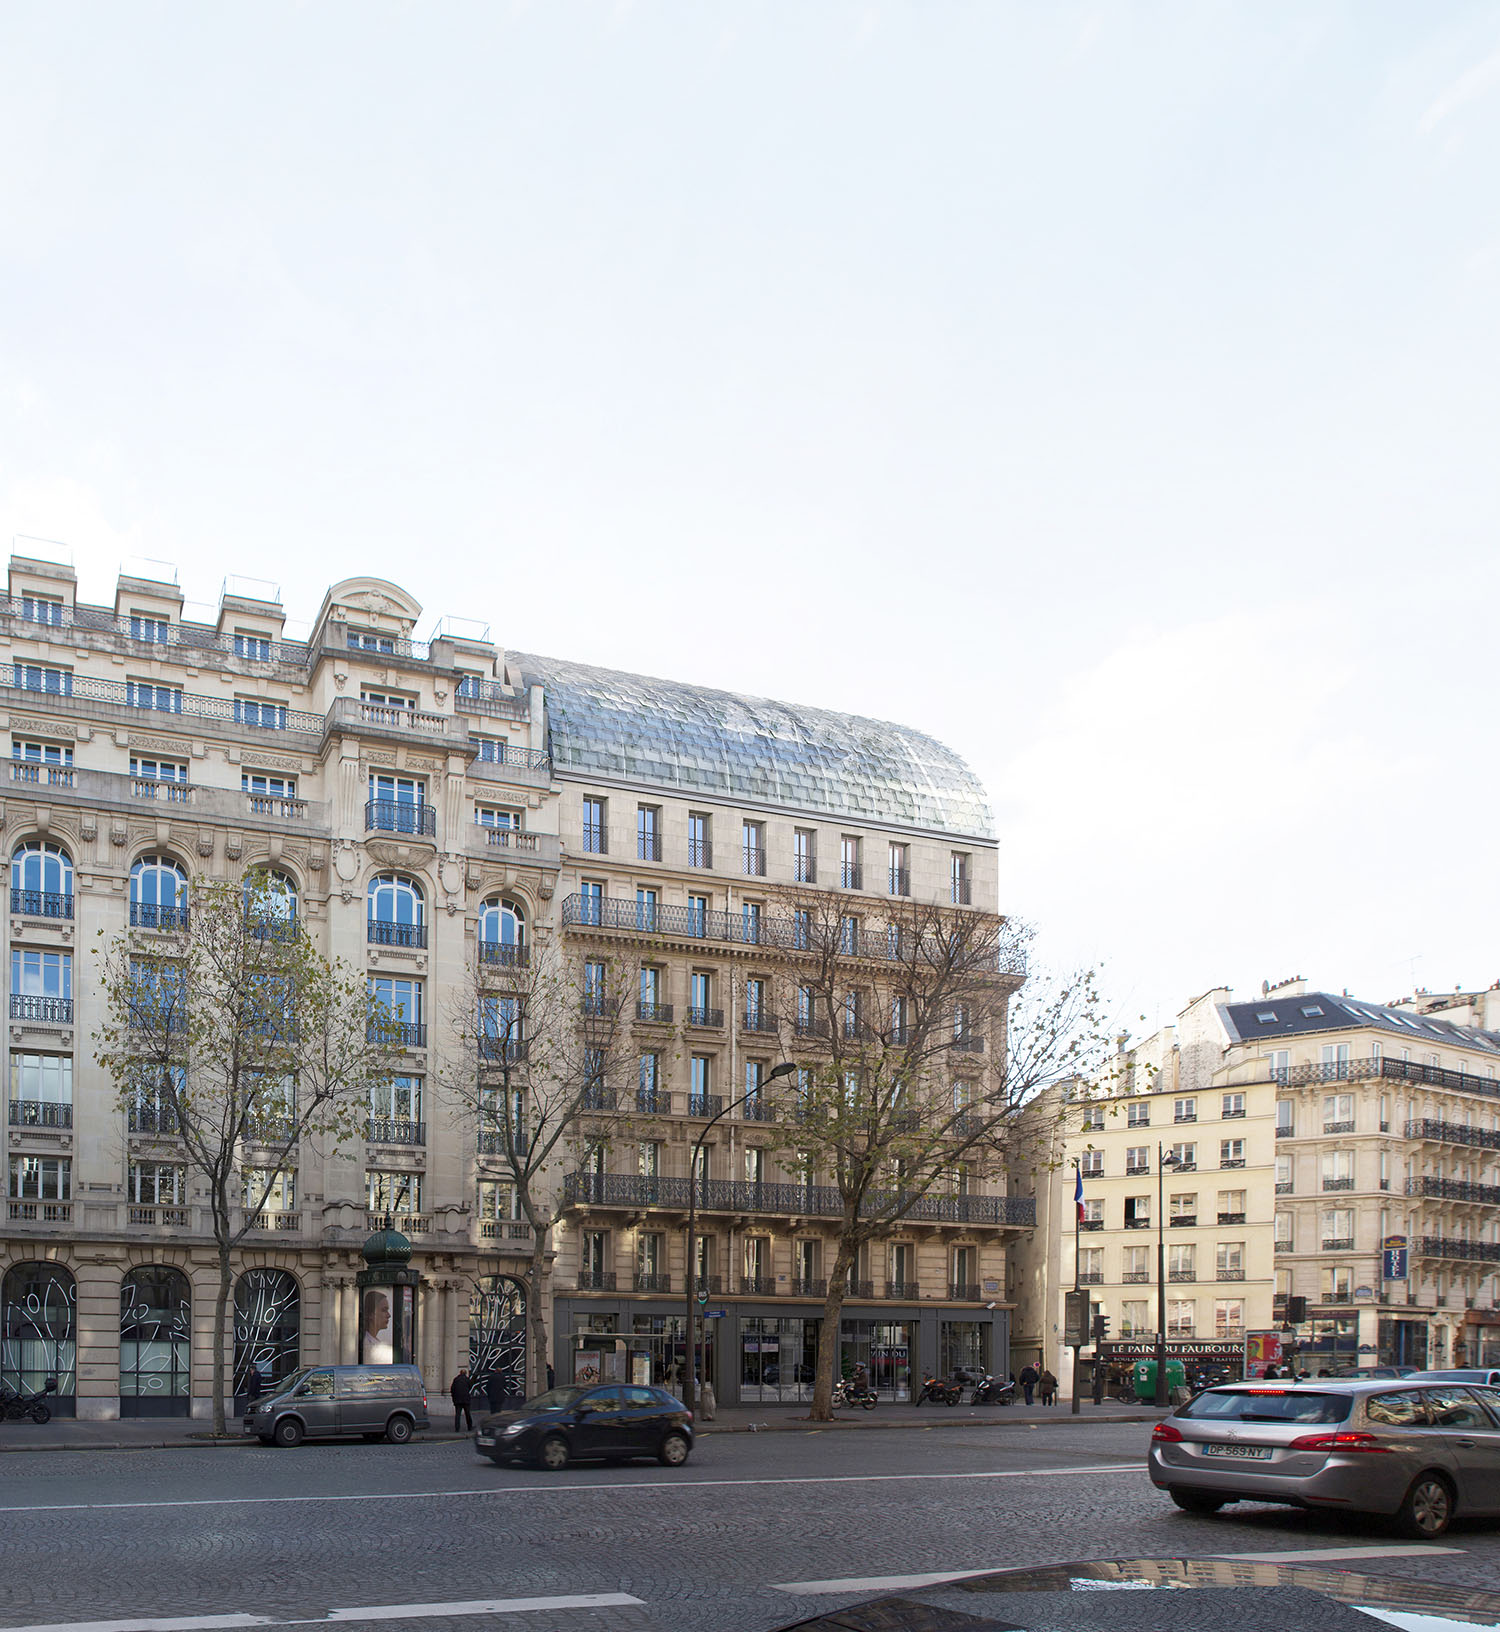 175 Haussmann after its restructuring, from the back view. ©PCA-STREAM}